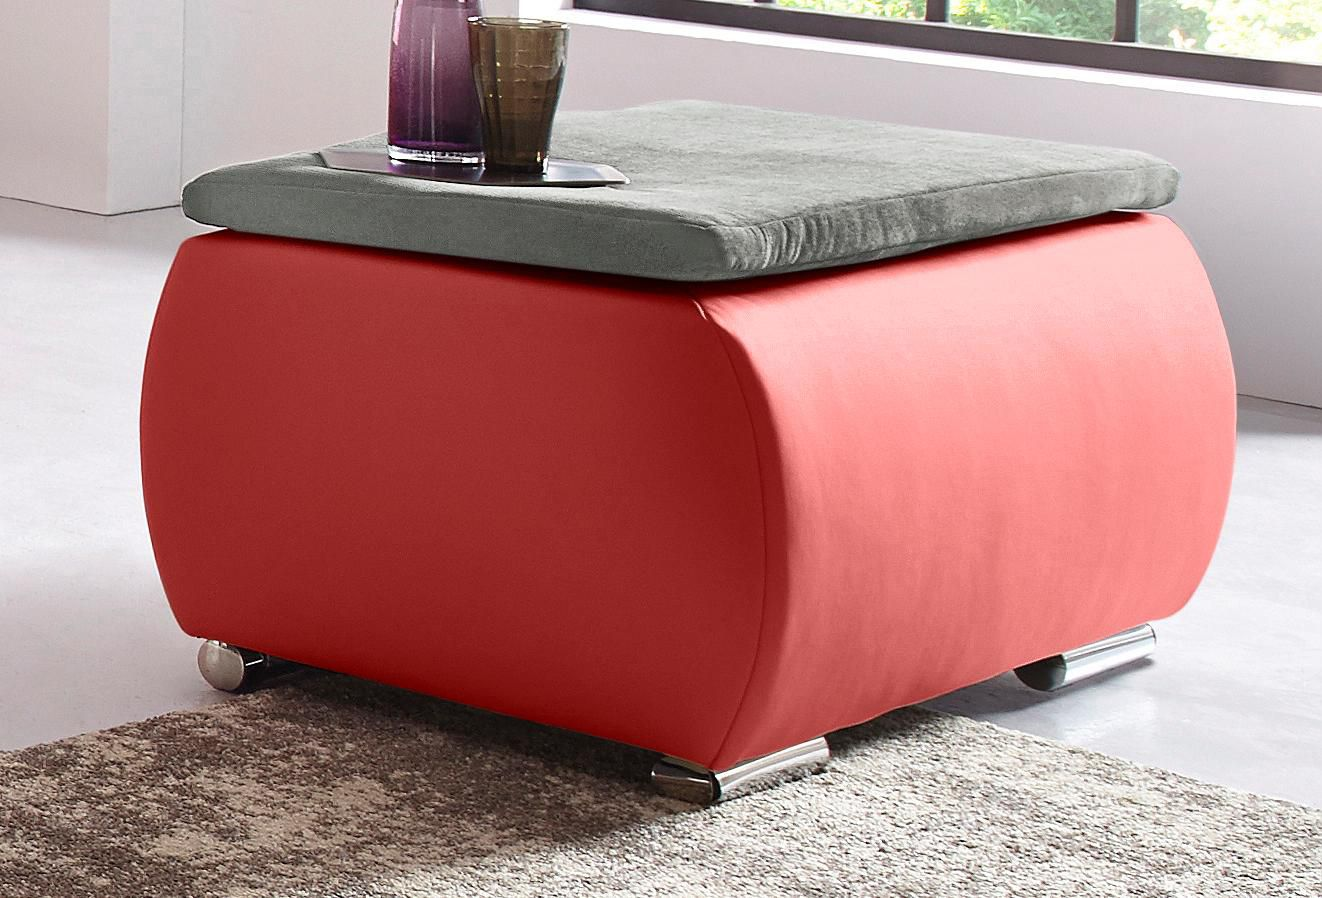 COLLECTION AB Collection AB Polsterhocker mit Boxspring-Aufbau